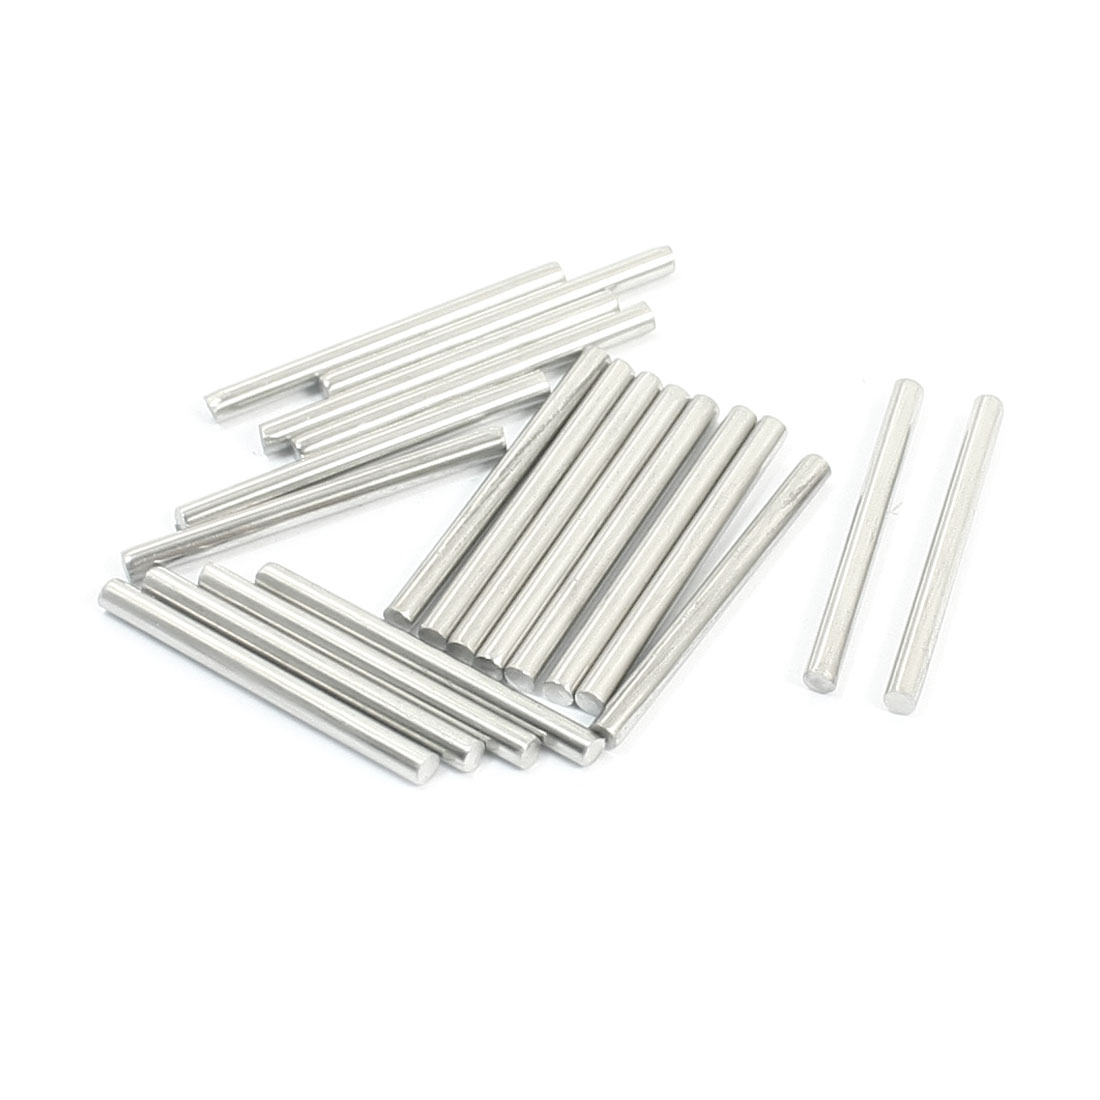 20pcs RC Aircraft Toys Replacement Stainless Steel Round Bar 30x2.5mm